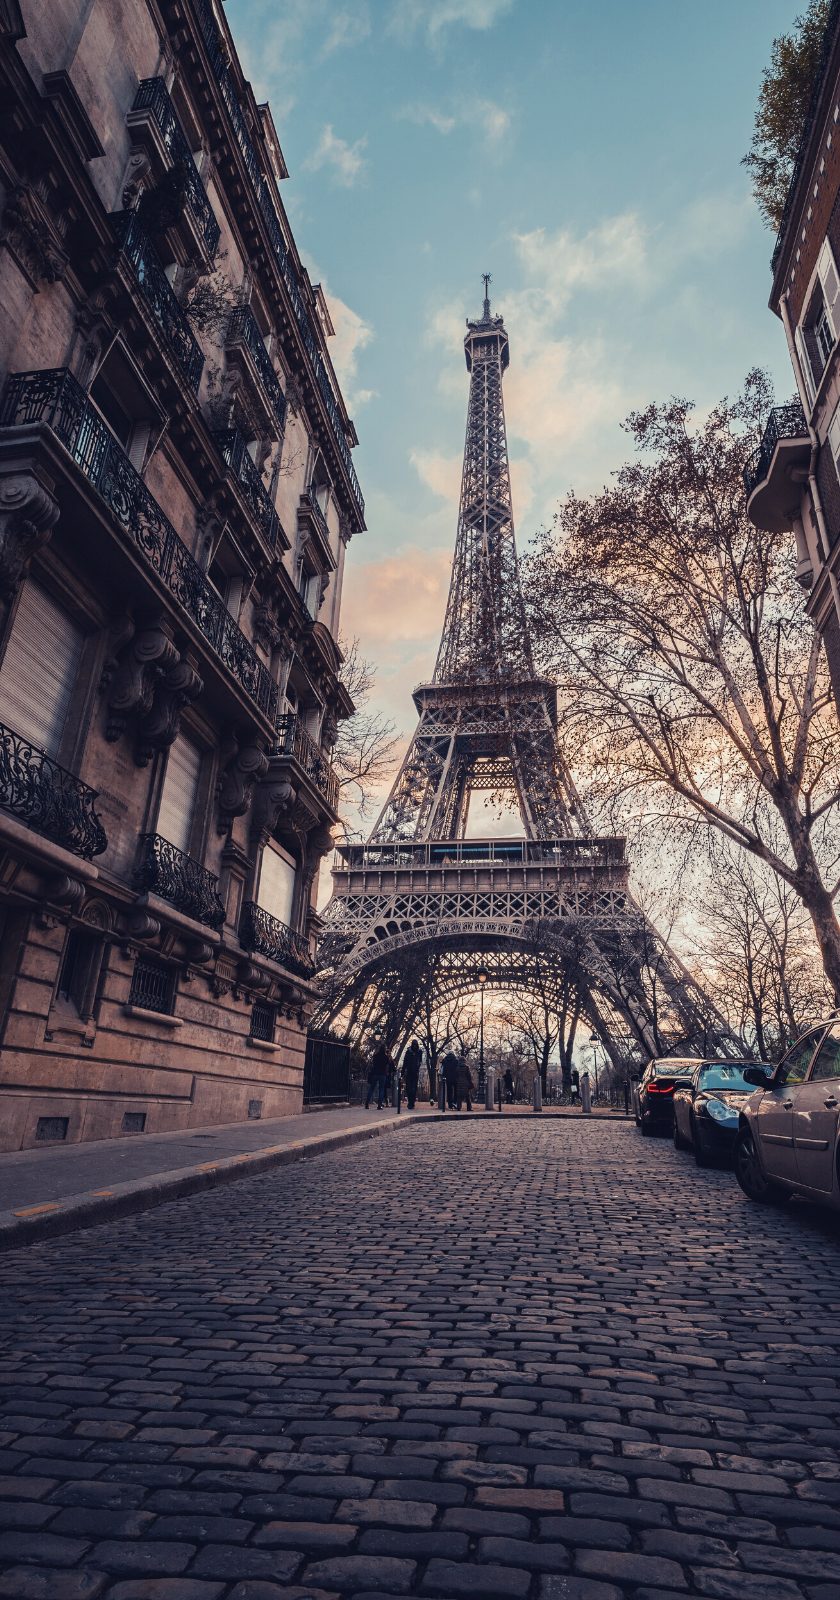 Wallpapers For Iphone Best Paris Tumblr Aesthetics Wallpapers Tgbl In 2020 Paris Photography Eiffel Tower Paris Tumblr Eiffel Tower Photography